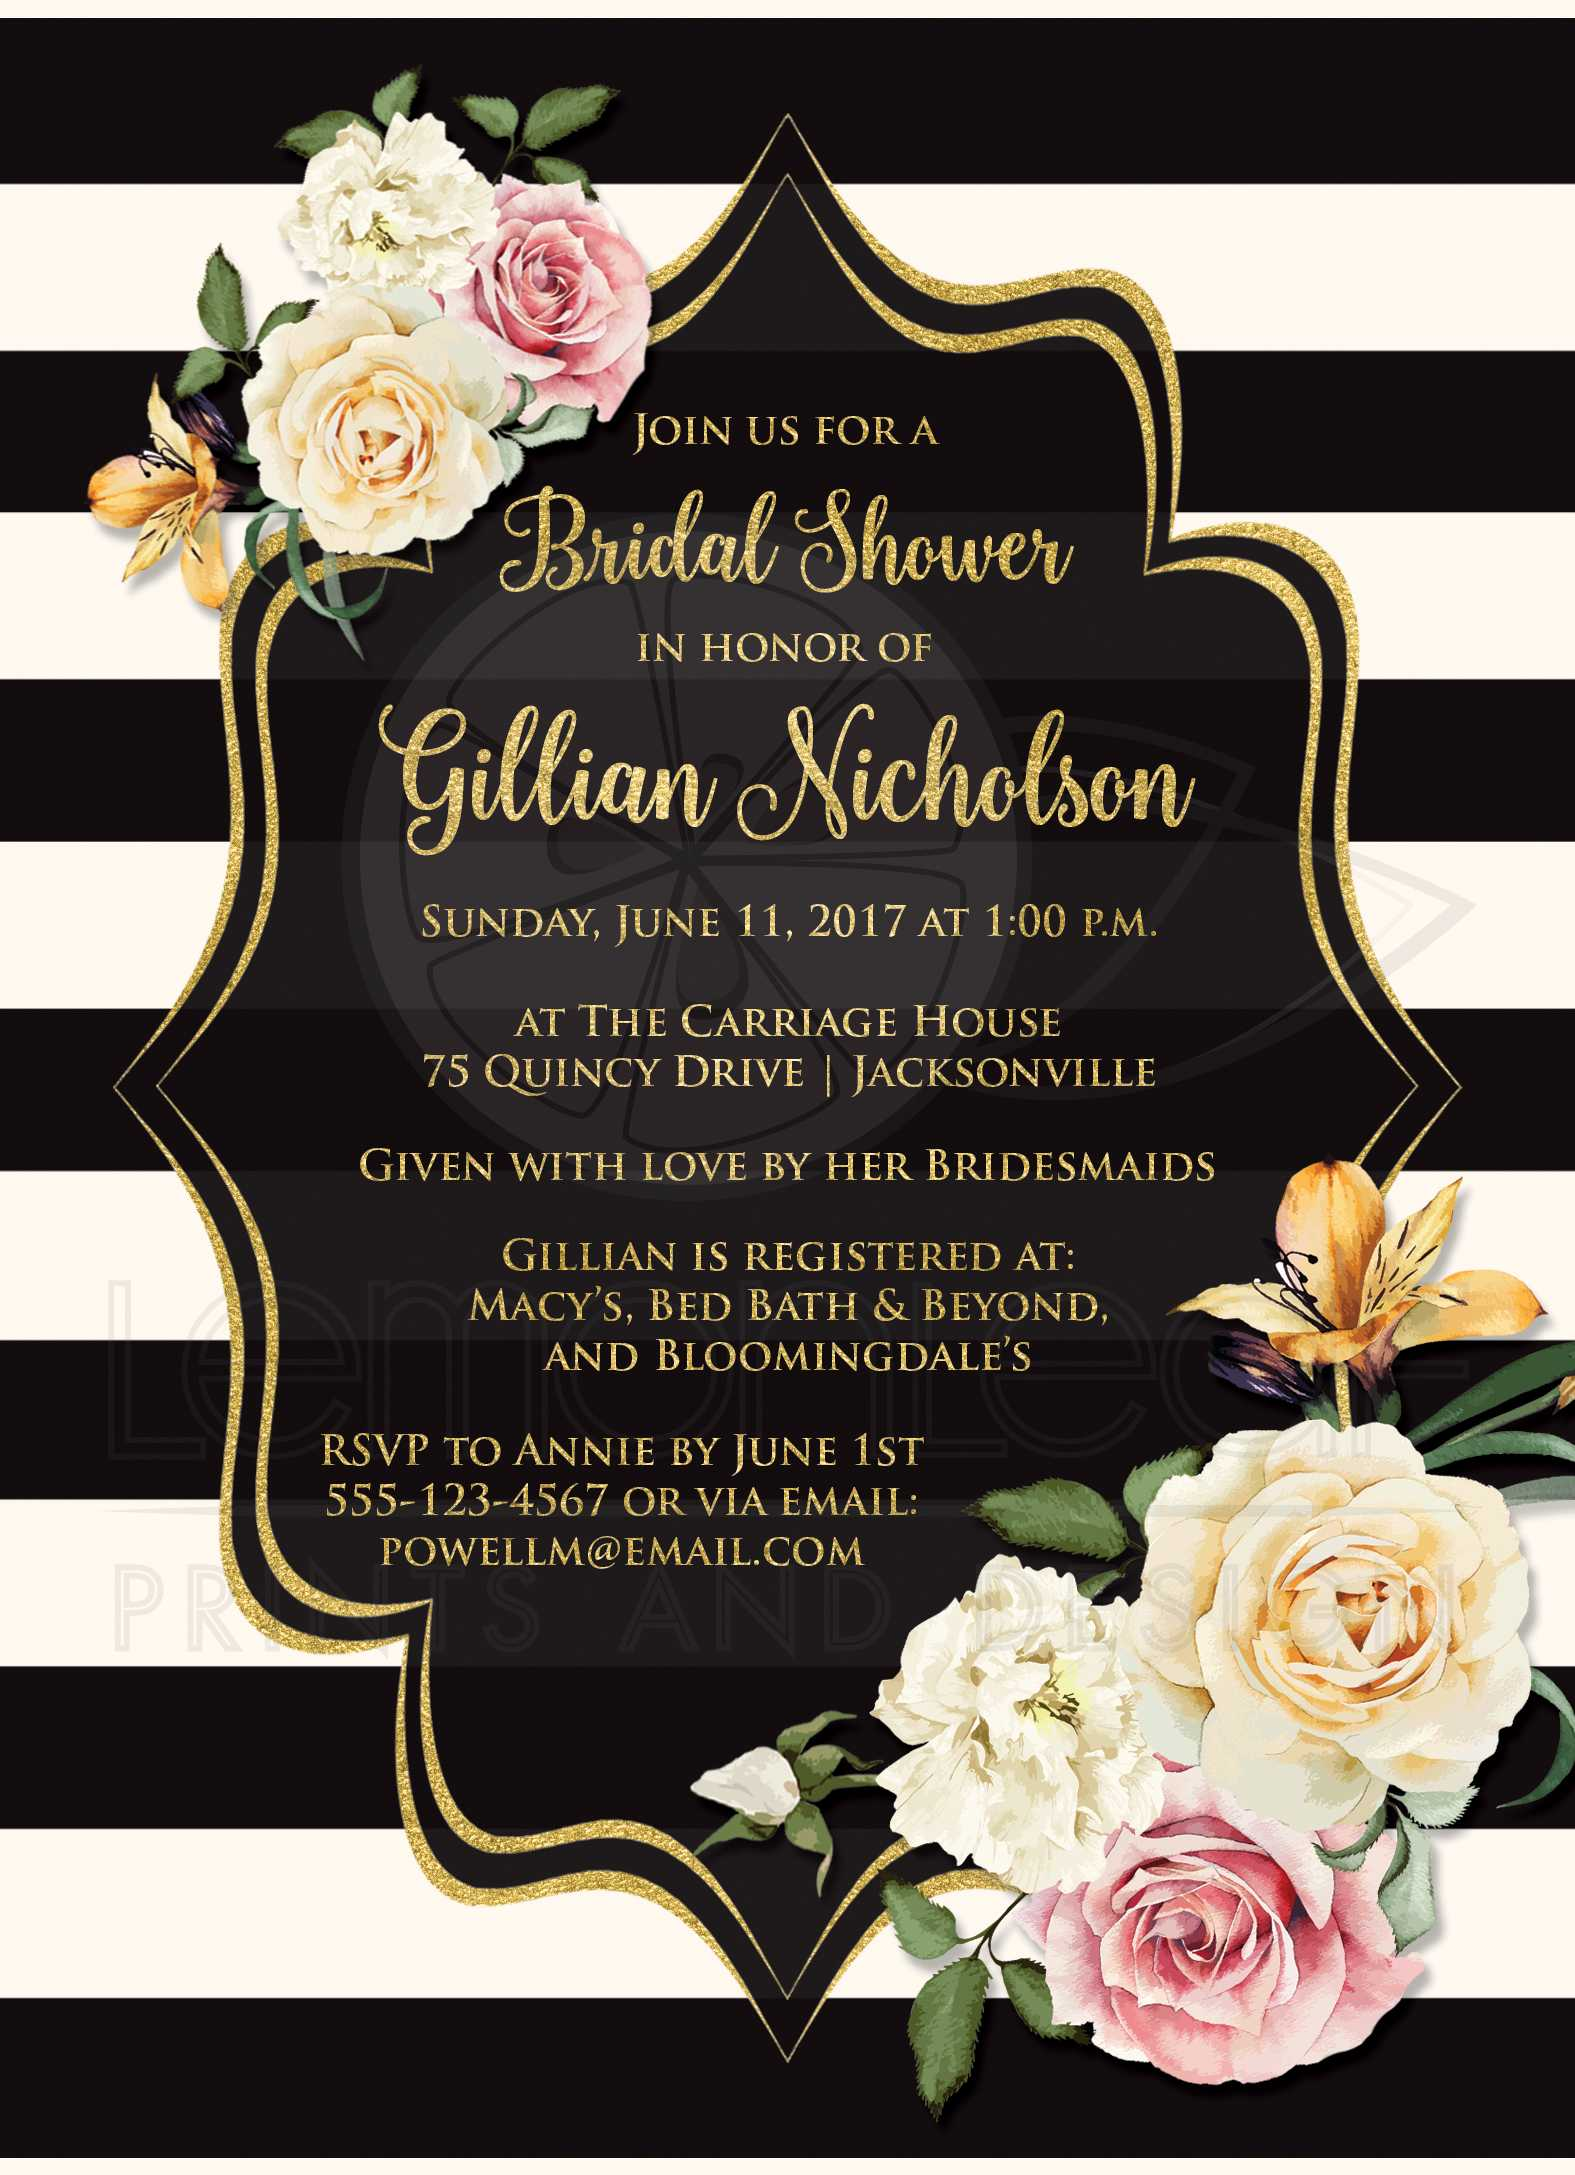 E invites for bridal shower picture ideas references e invites for bridal shower bridal shower invitation black ivory stripes vintage floral simulated gold foil filmwisefo Gallery